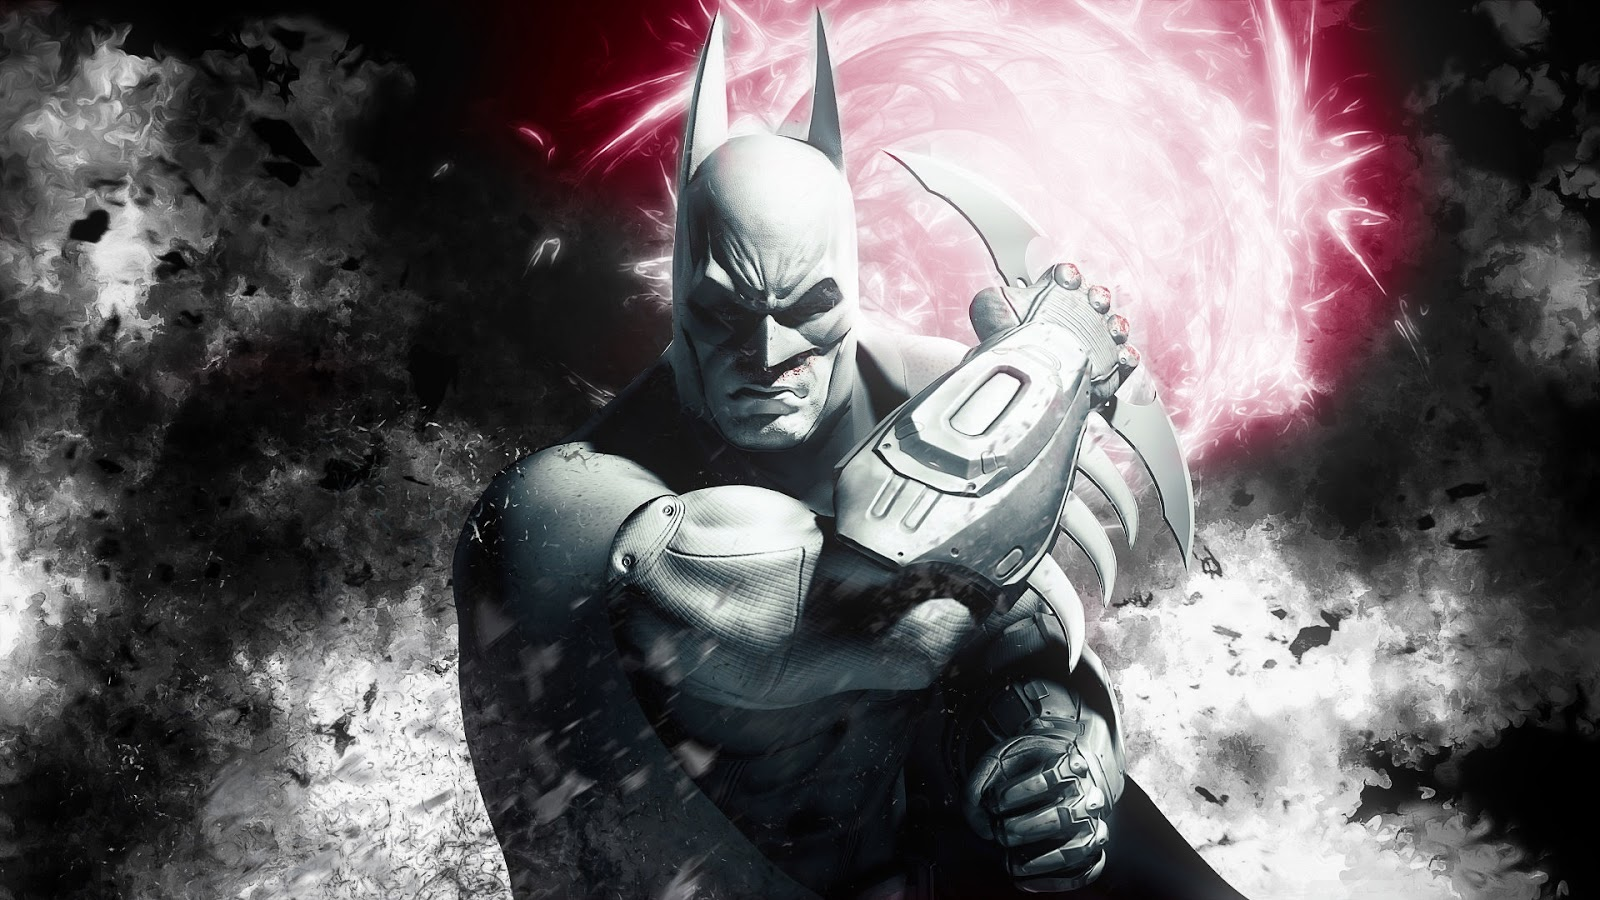 Batman New HD Wallpapers 2013 All About HD Wallpapers 1600x900